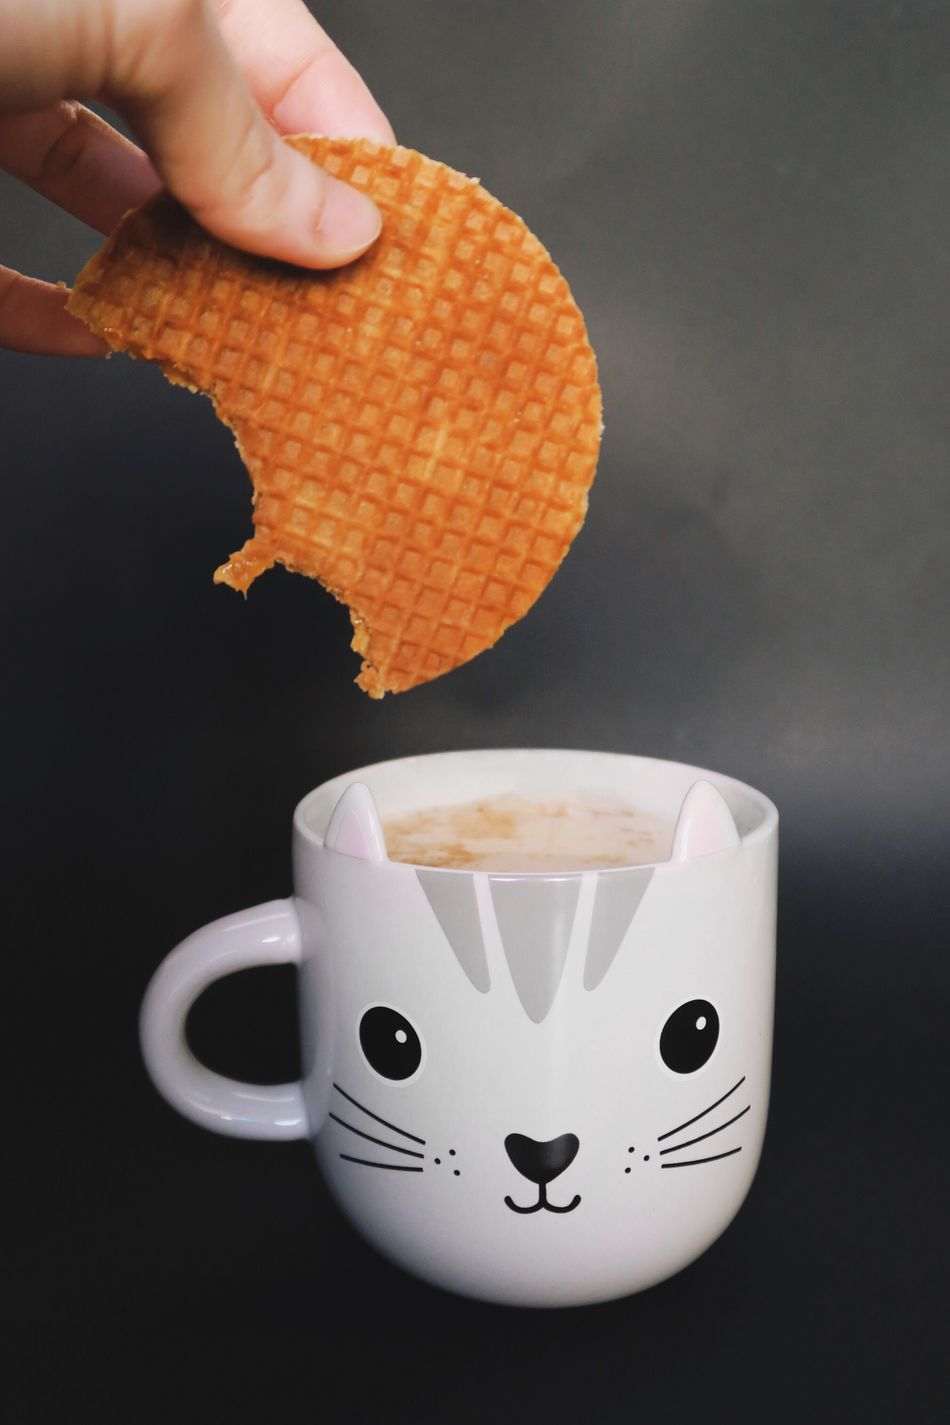 🍵🍪🐱 Coffee - Drink Food And Drink Coffee Cup Drink Human Hand Refreshment Human Body Part One Person Food Indoors  Freshness Dipping Close-up Day Cup Of Tea Honey Cookies Cat Mug Mug Tea Time Cup Cat Tea Cookies Black Background